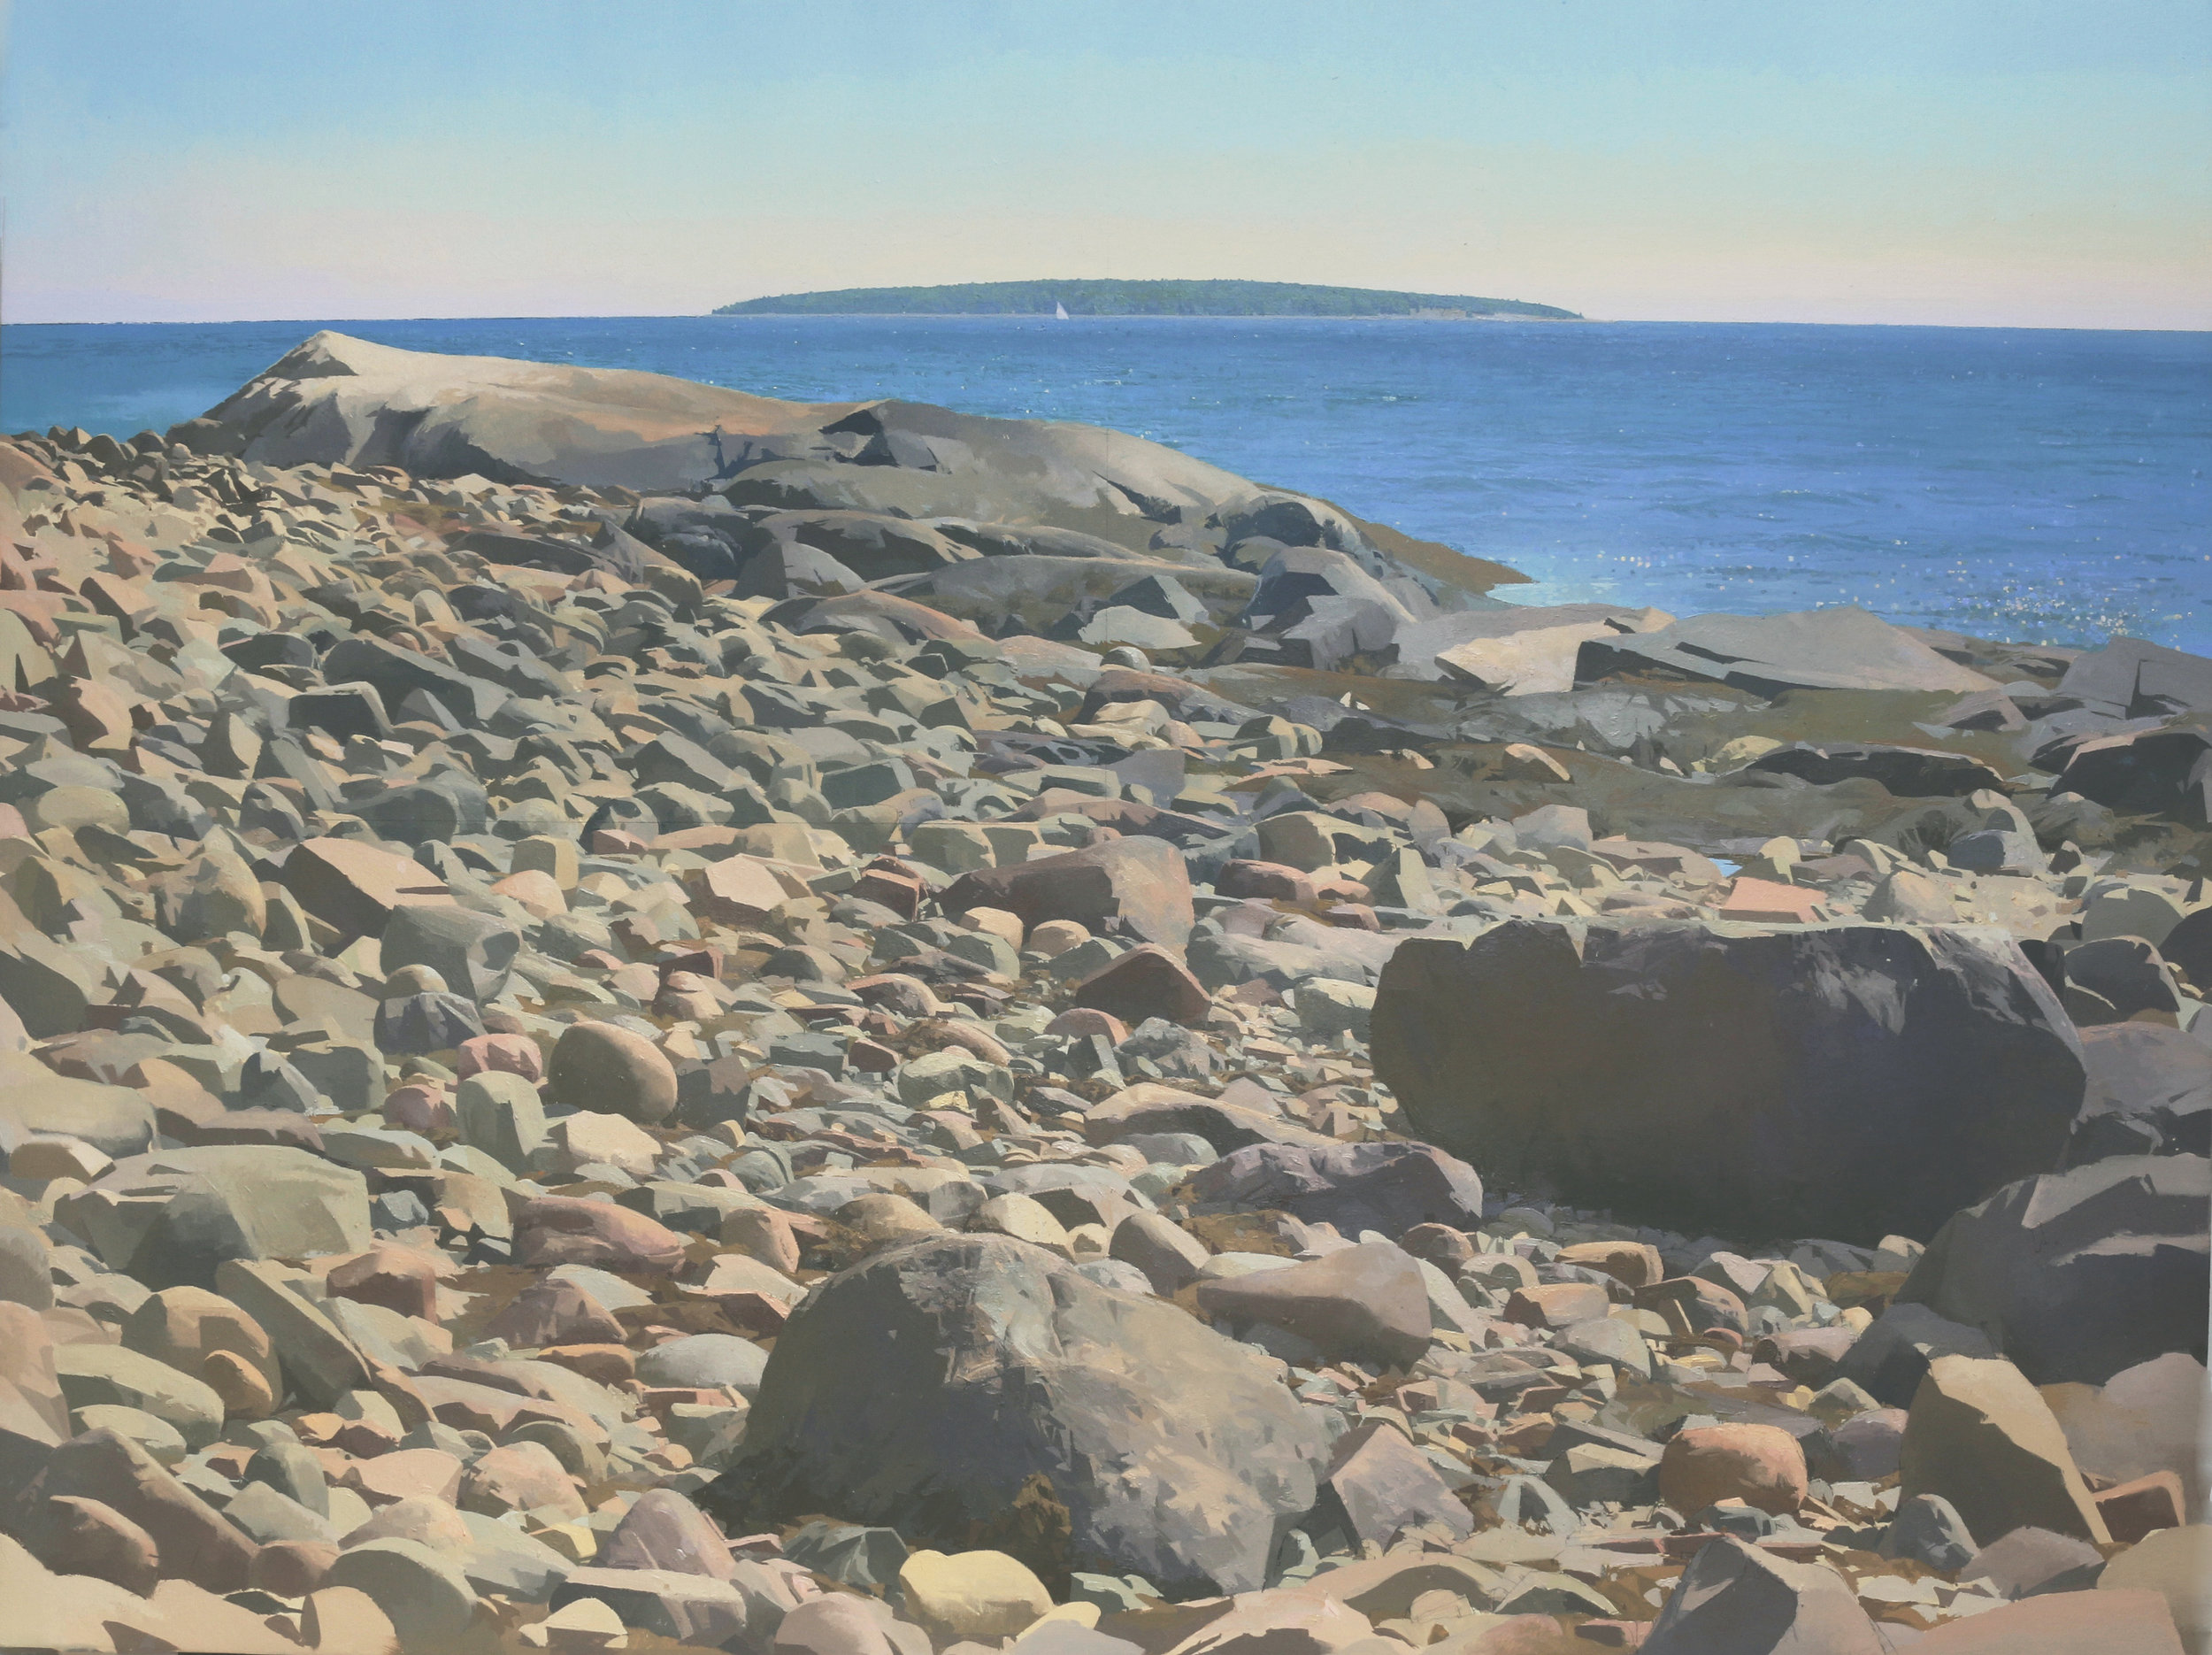 PAINTING BY CHRISTOPHER S. TIETJEN, ACADIA ROCK BEACH, 2014-17, OIL ON LINEN, 3 X 4 FT